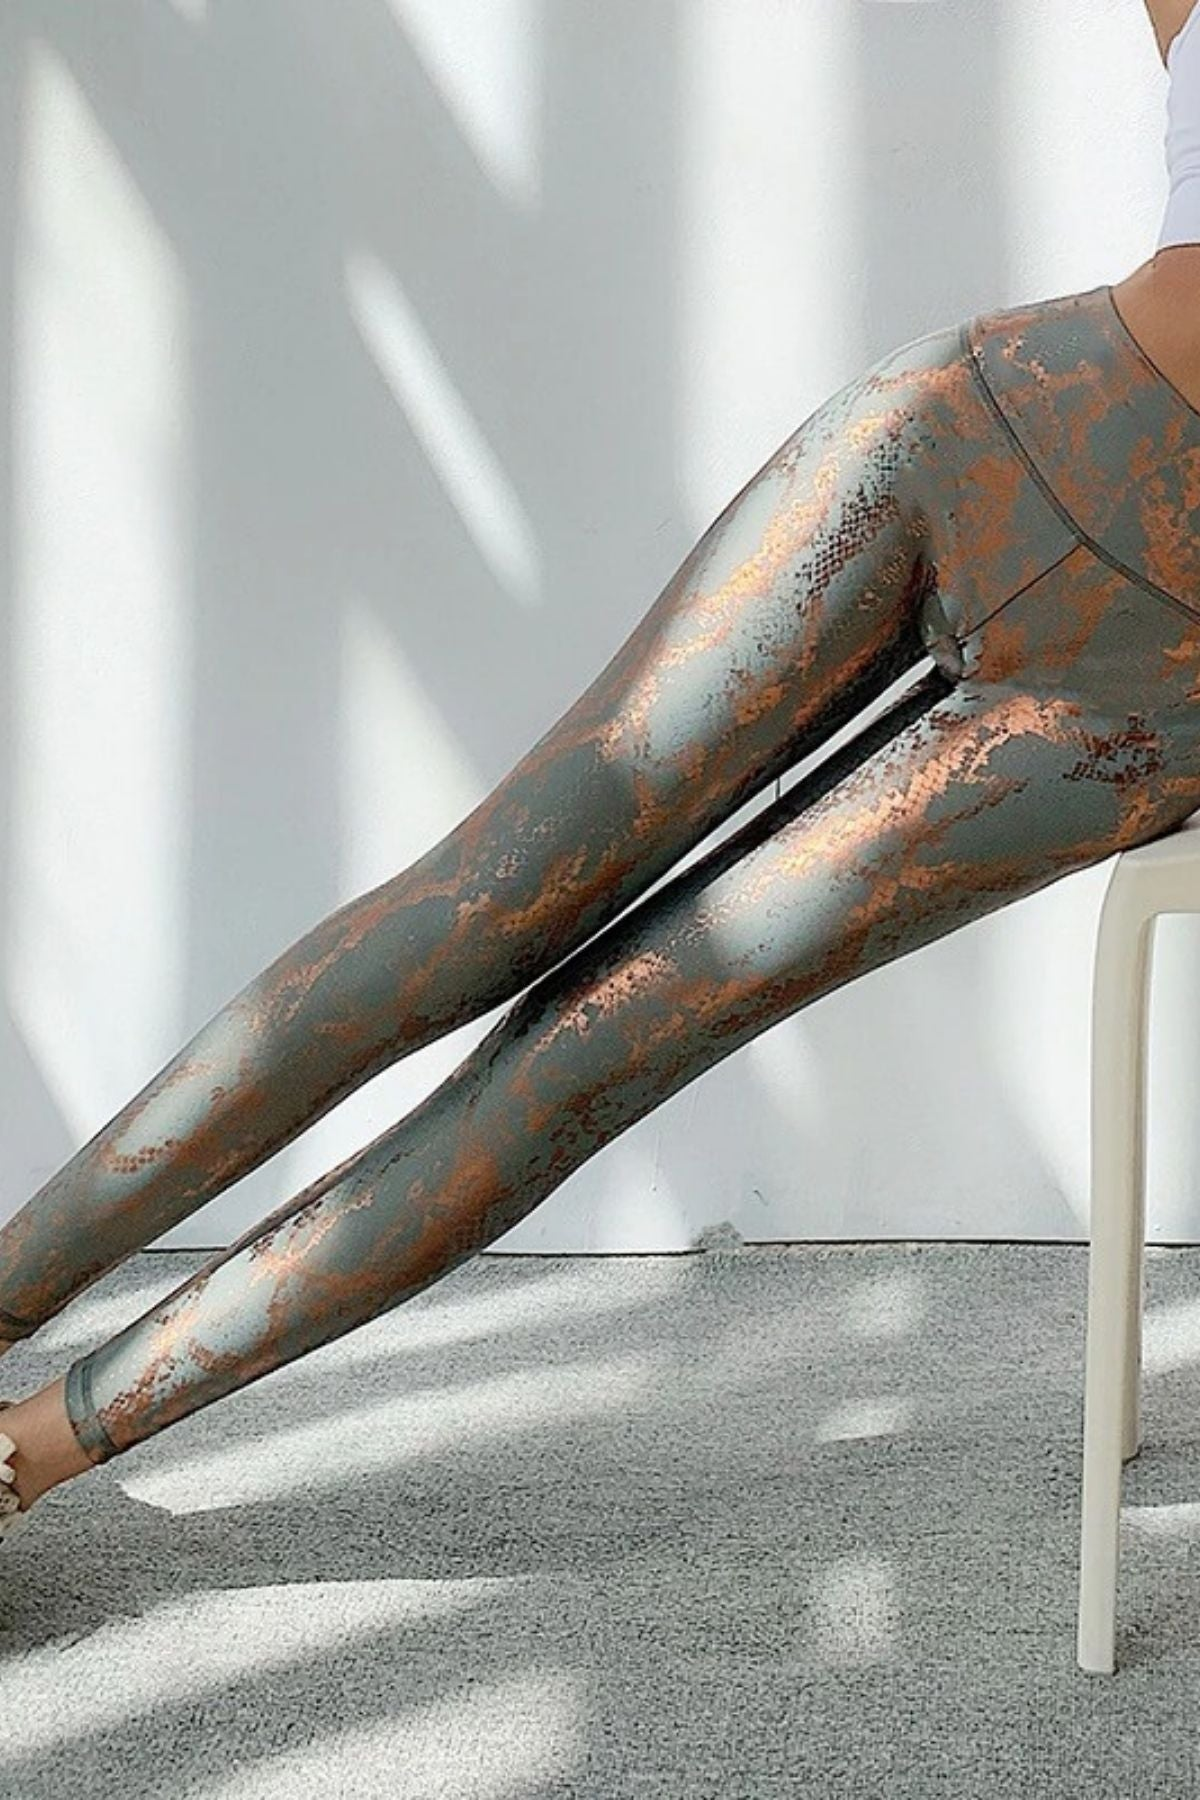 Women's Sexy Tight Snakeskin Print Legging With High Waisted Fit And Ruched Shiny Metallic Color